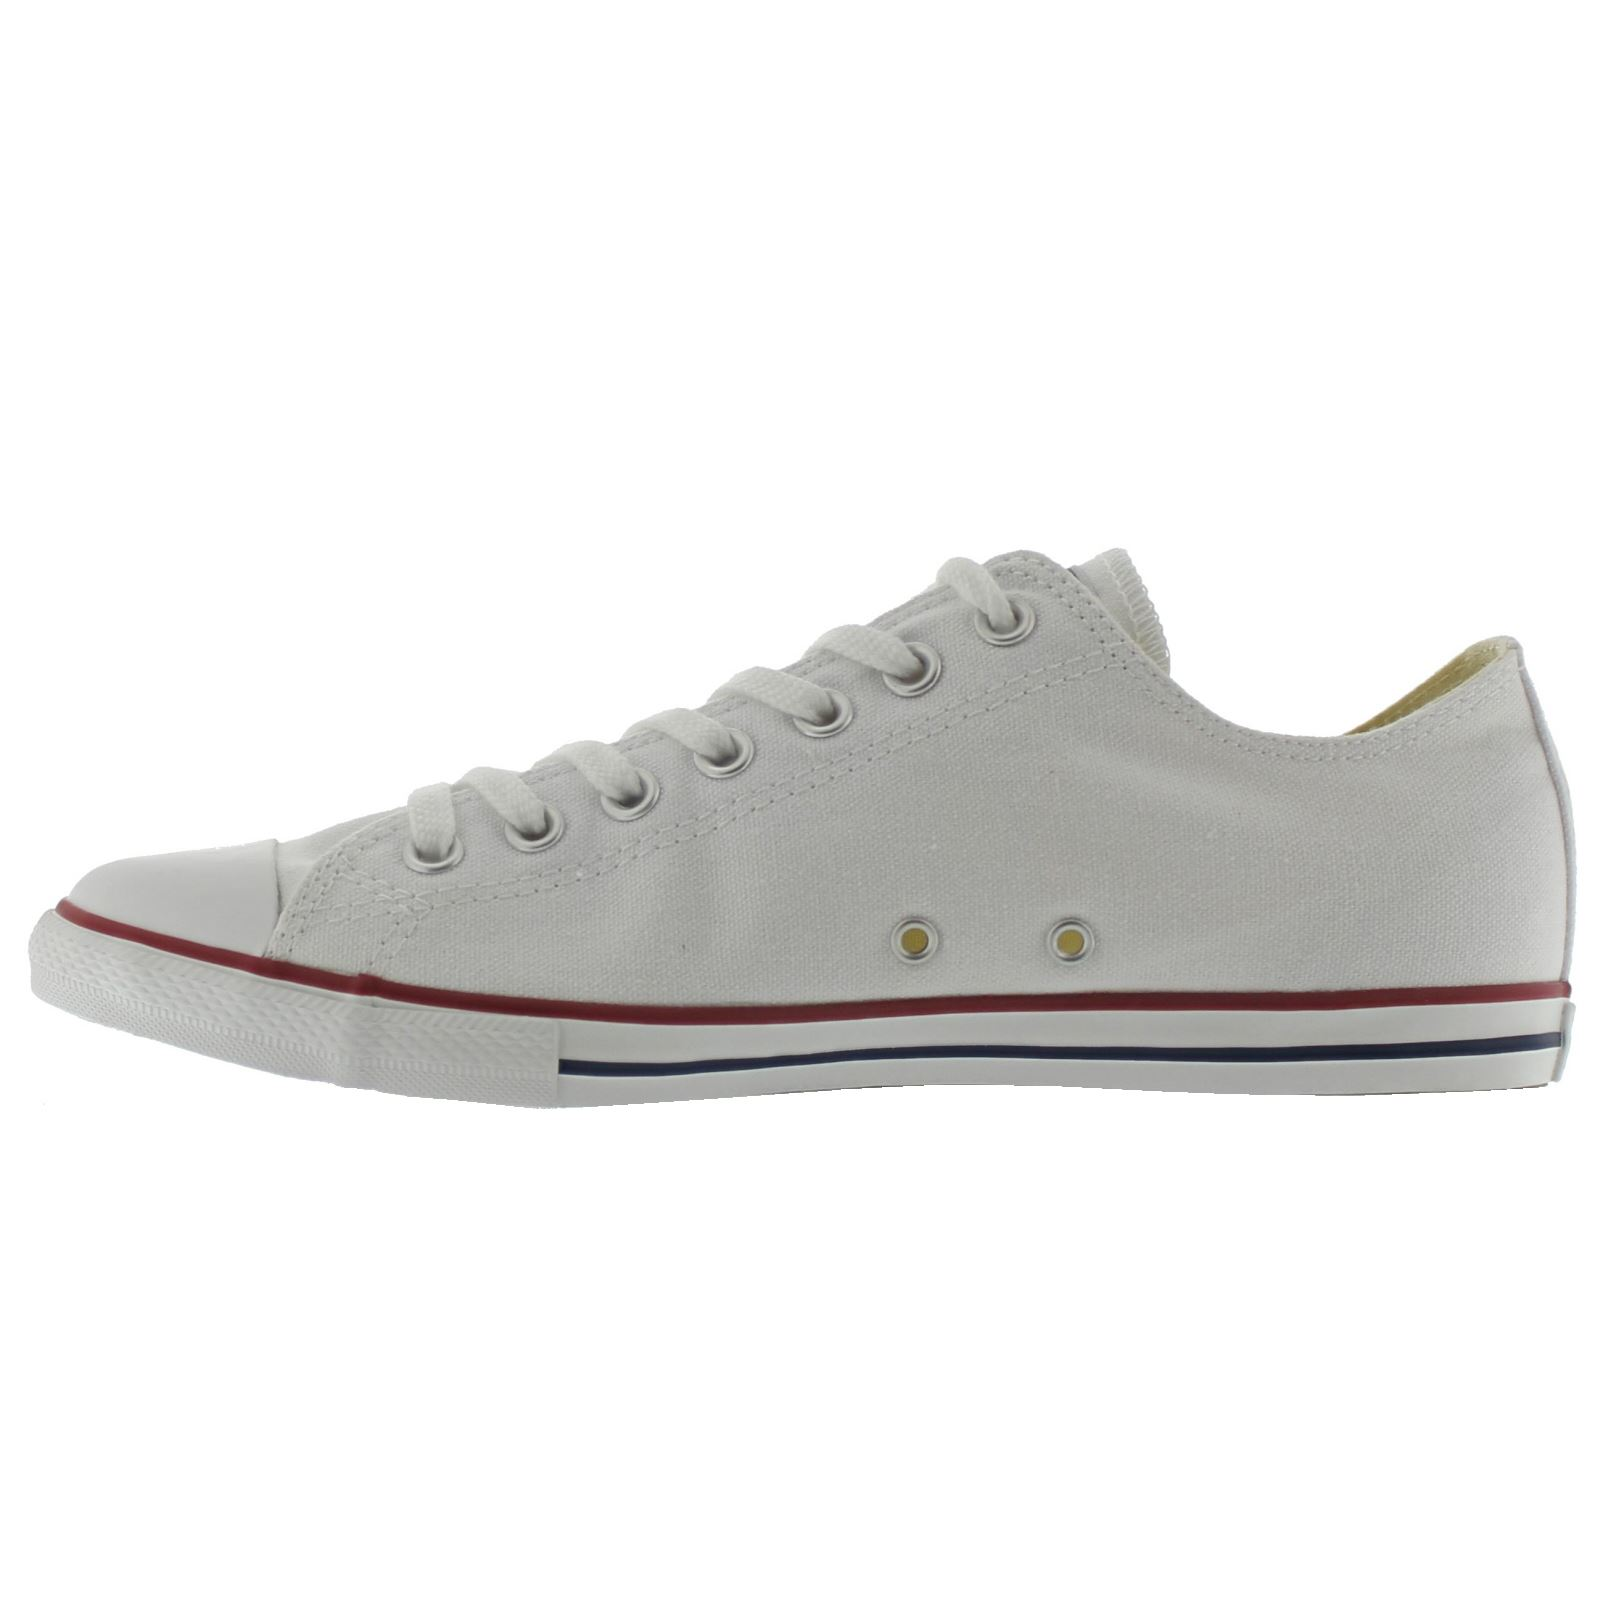 Converse-All-Star-Ox-Unisex-Mens-Womens-Ladies-Trainers thumbnail 28